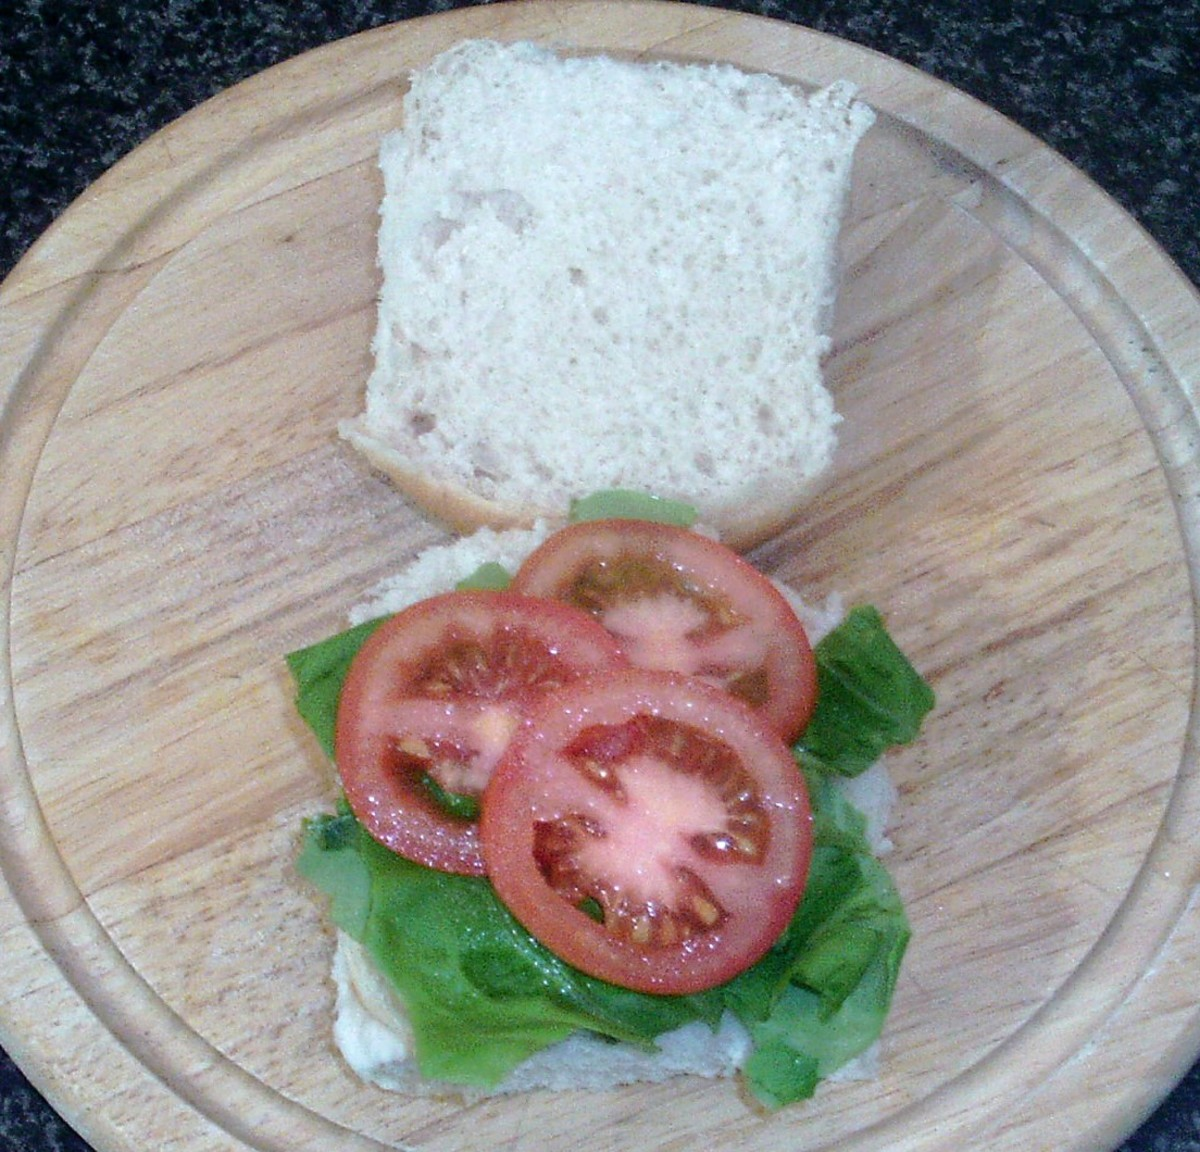 Lettuce and tomato are arranged on roll